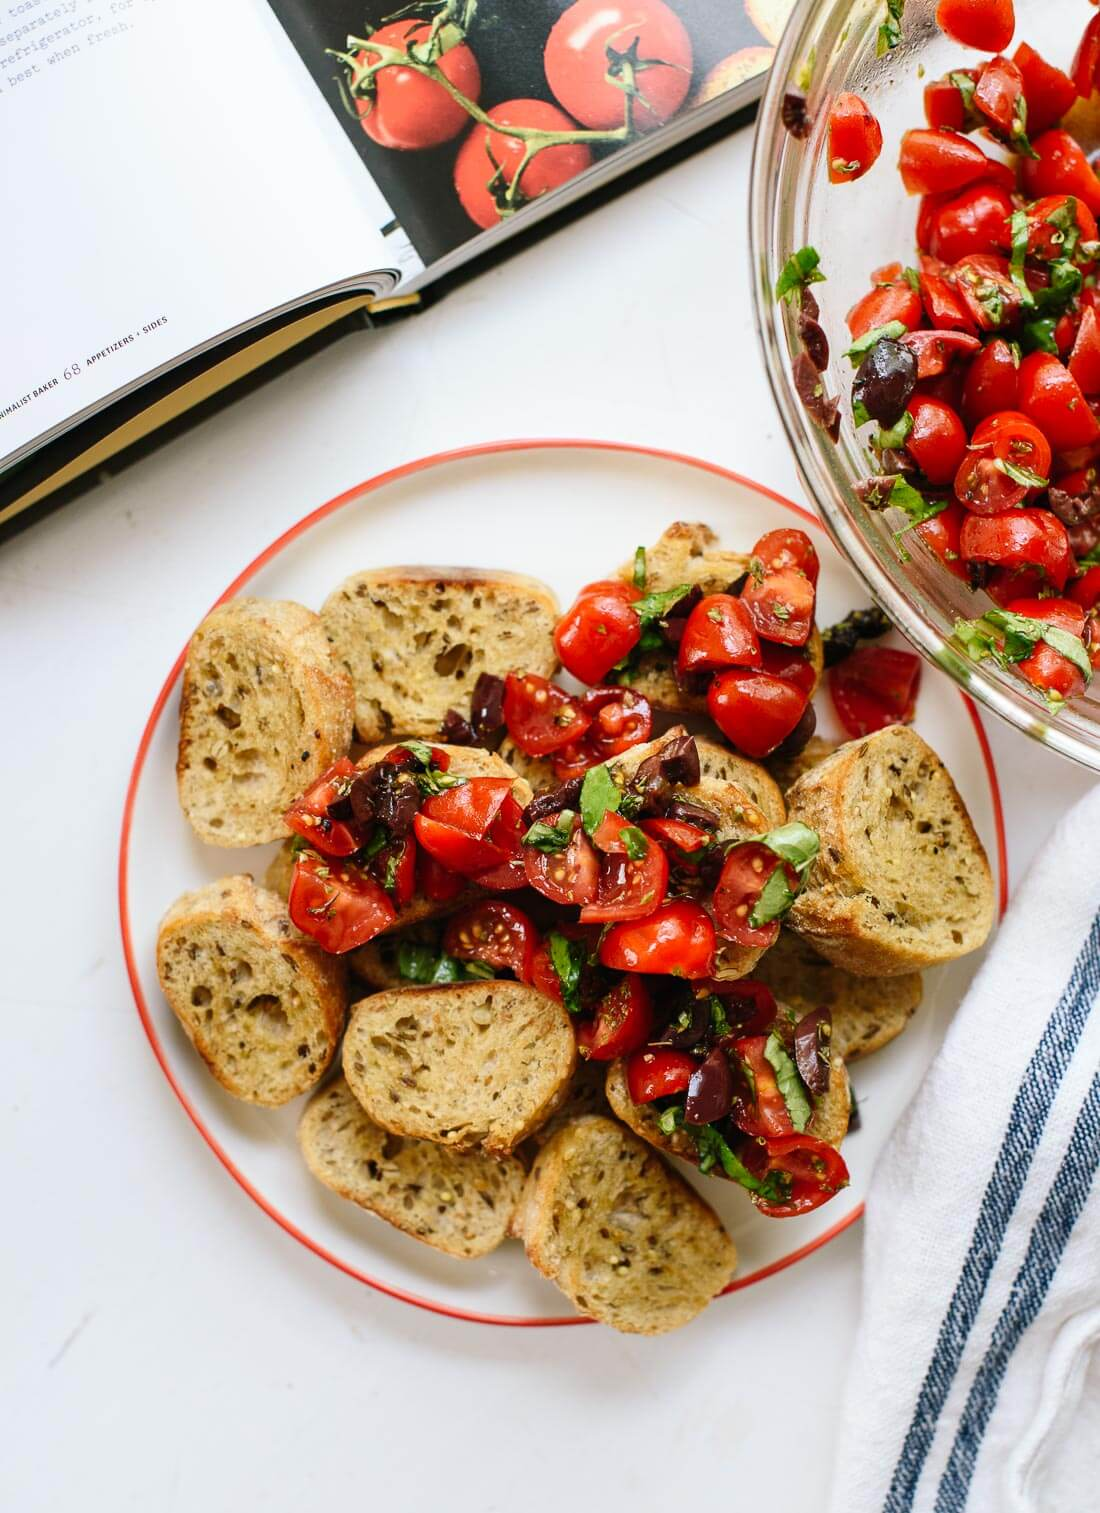 This easy bruschetta features cherry tomatoes, basil and balsamic vinegar. Delicious! cookieandkate.com